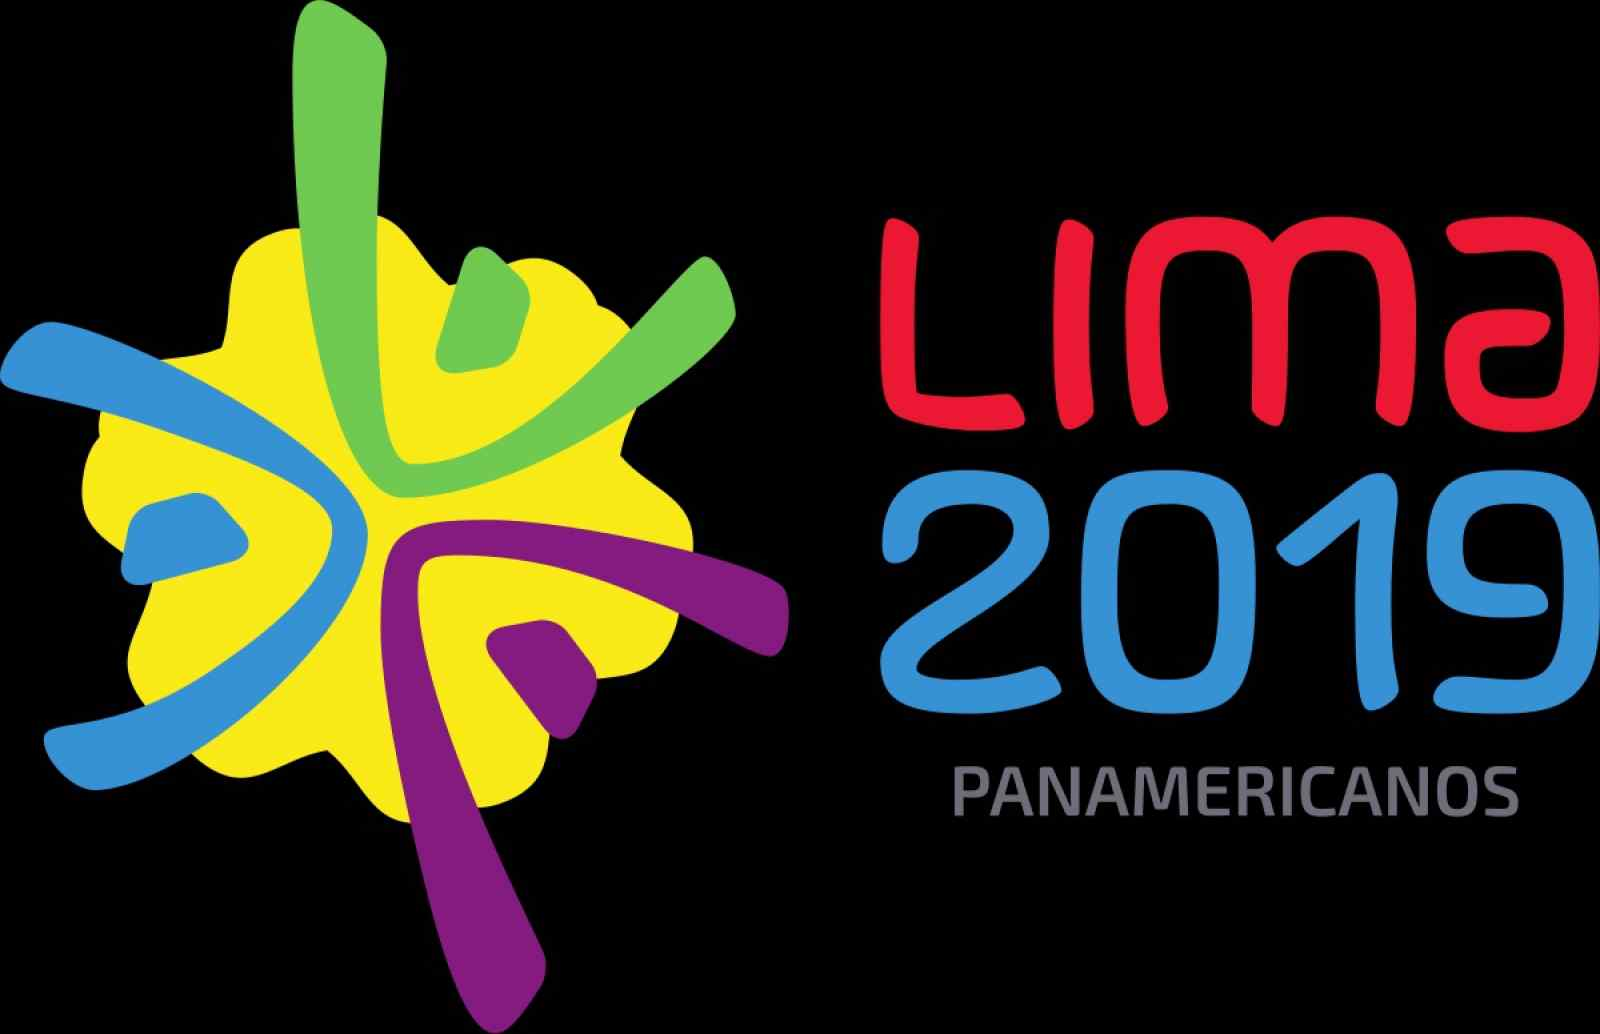 https://timebulletin.com/wp-content/uploads/2019/07/Pan-American-Games-2019.jpg